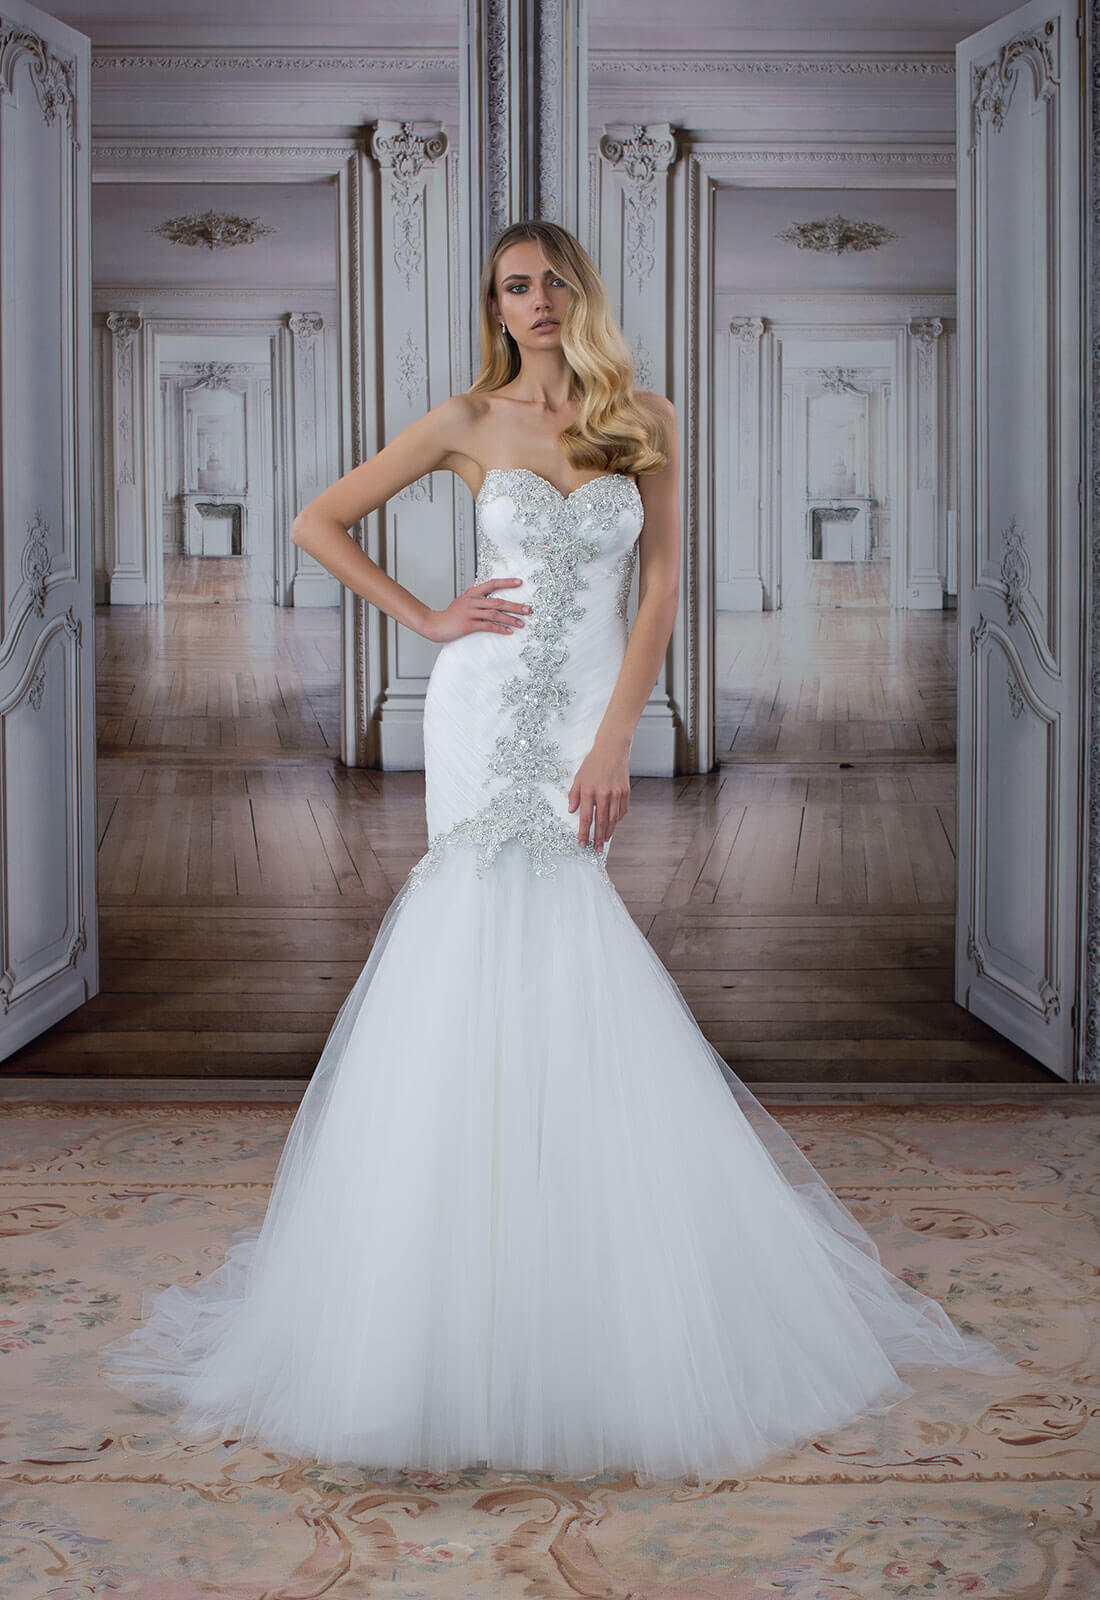 Love by Pnina Tornai 2017: Would You Say Yes to These Dresses? | Kamdora